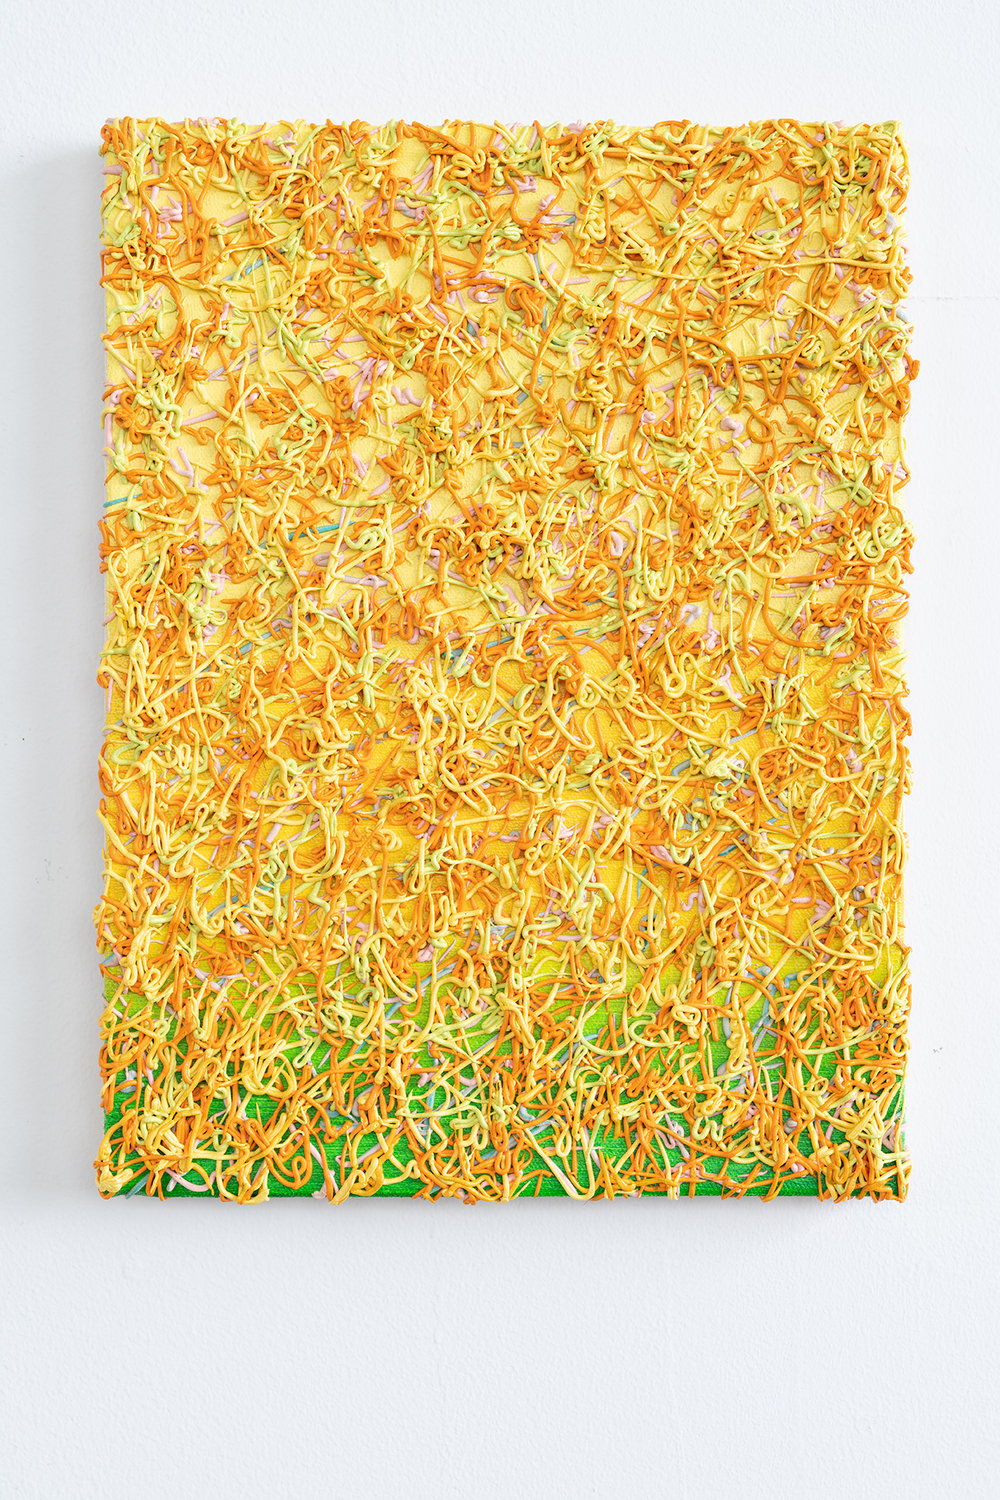 Philip Hardy   Noodle Painting (Yellow)  2018  Photo Rob Ventura